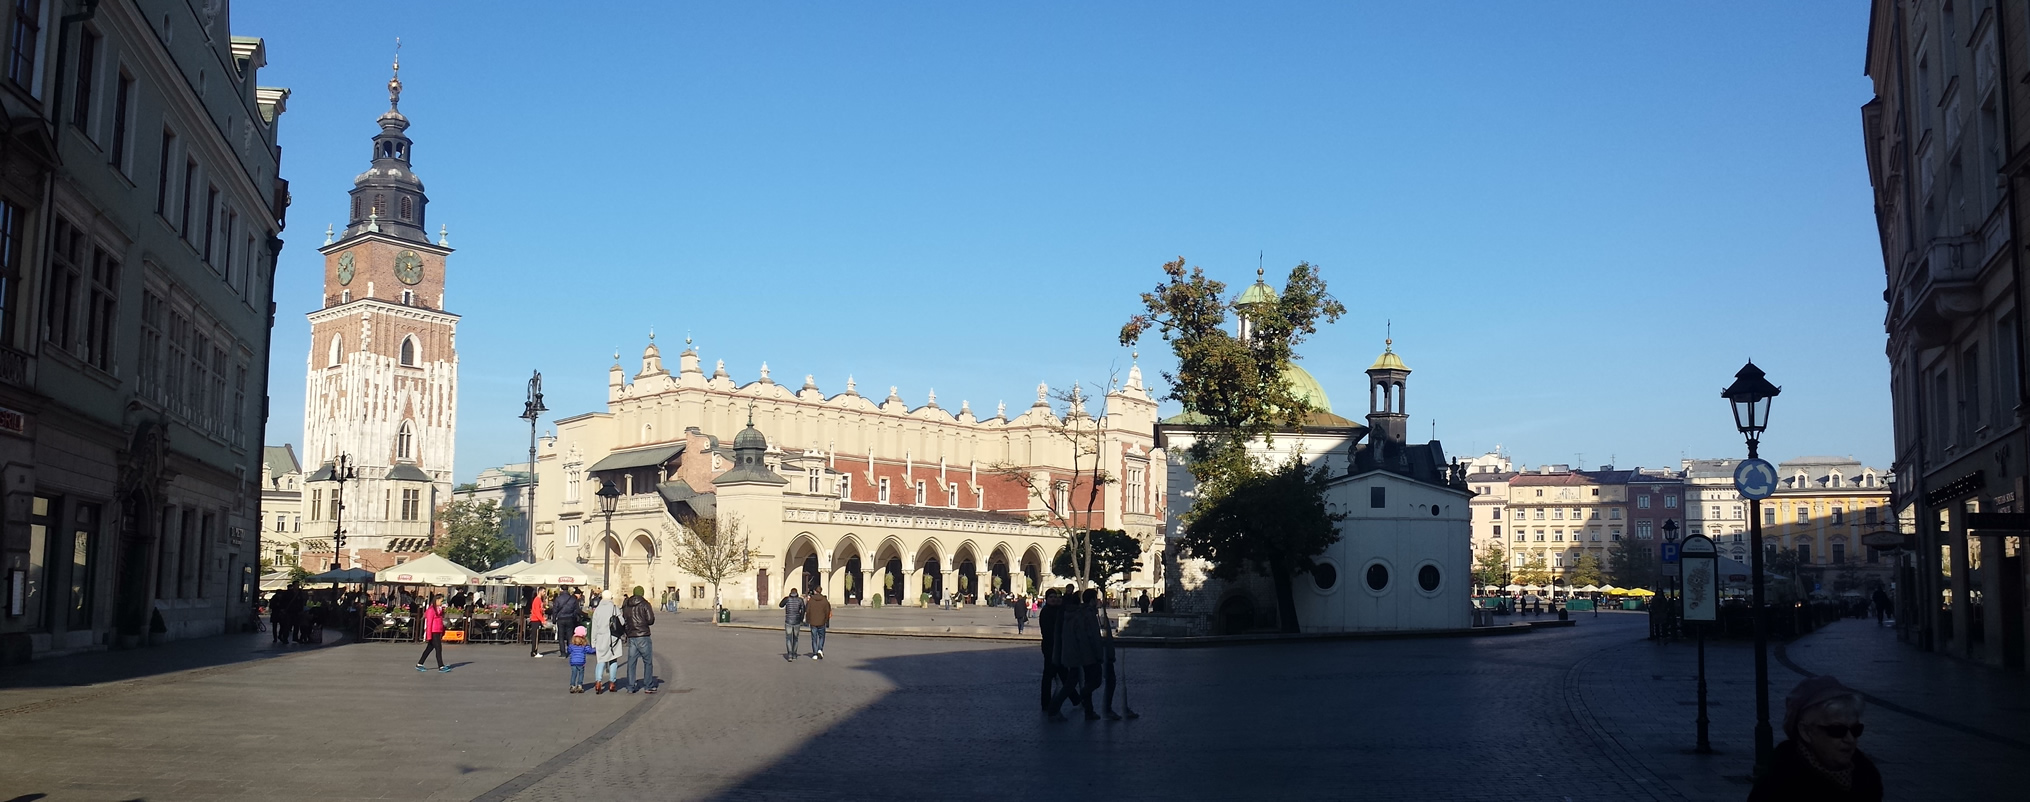 voyage agora 2015-11-01_056 cracovie